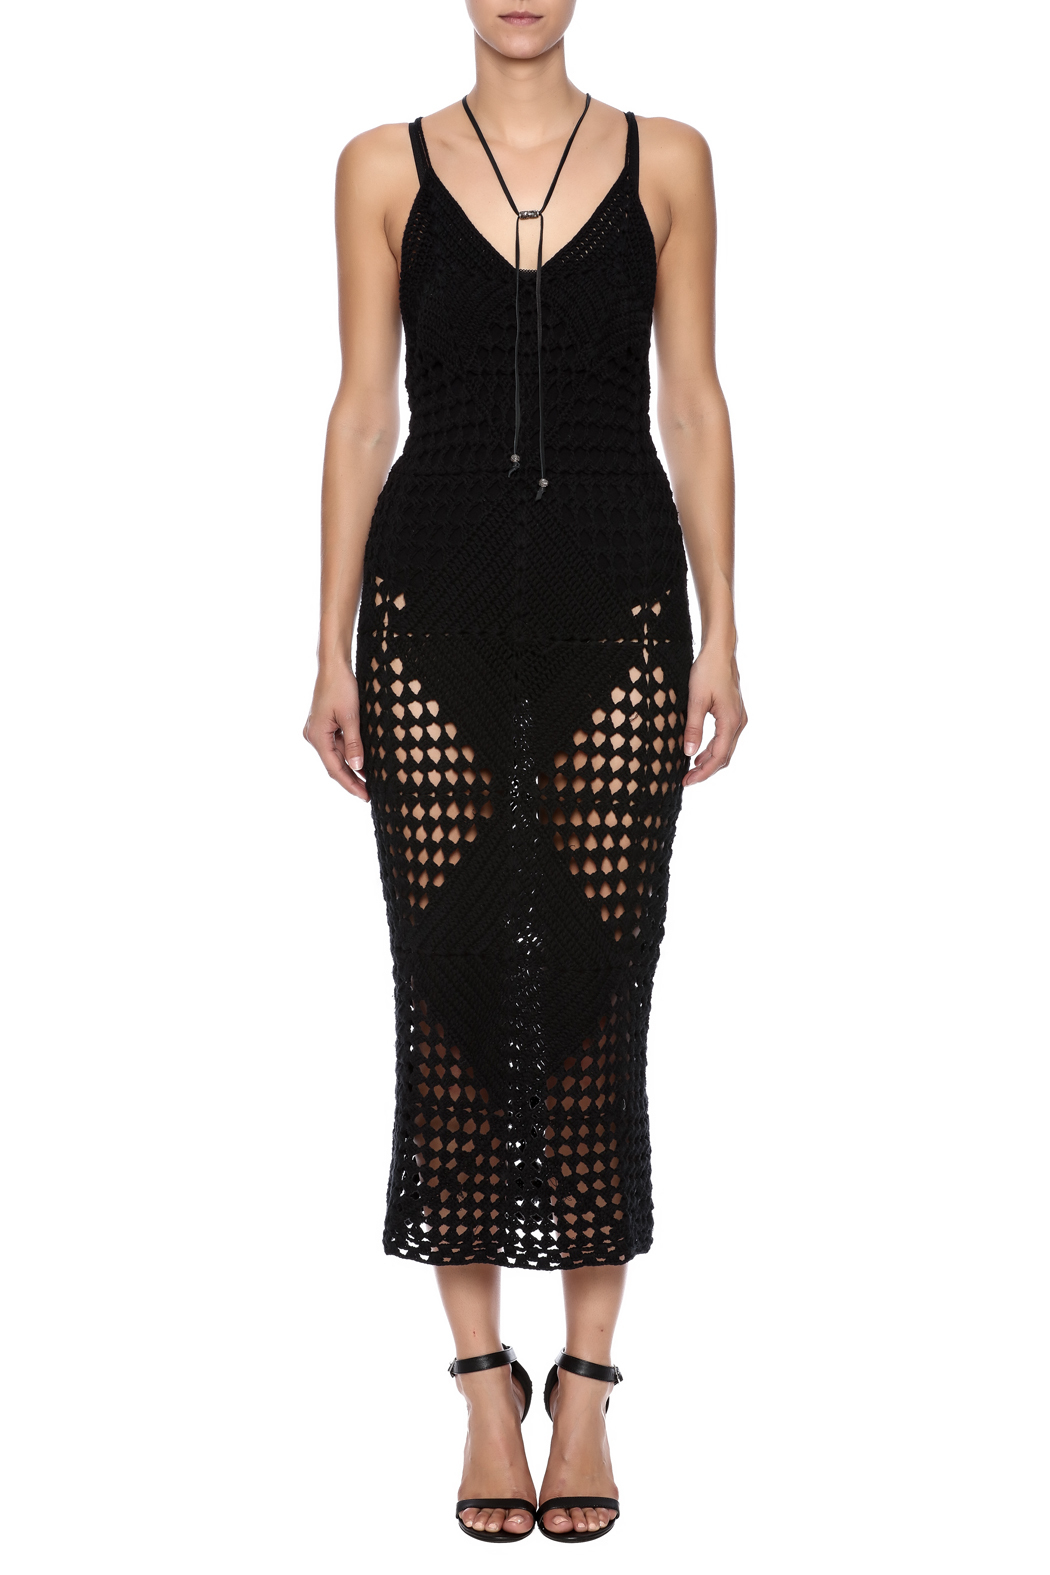 Olivaceous Black Miami Dress - Front Cropped Image